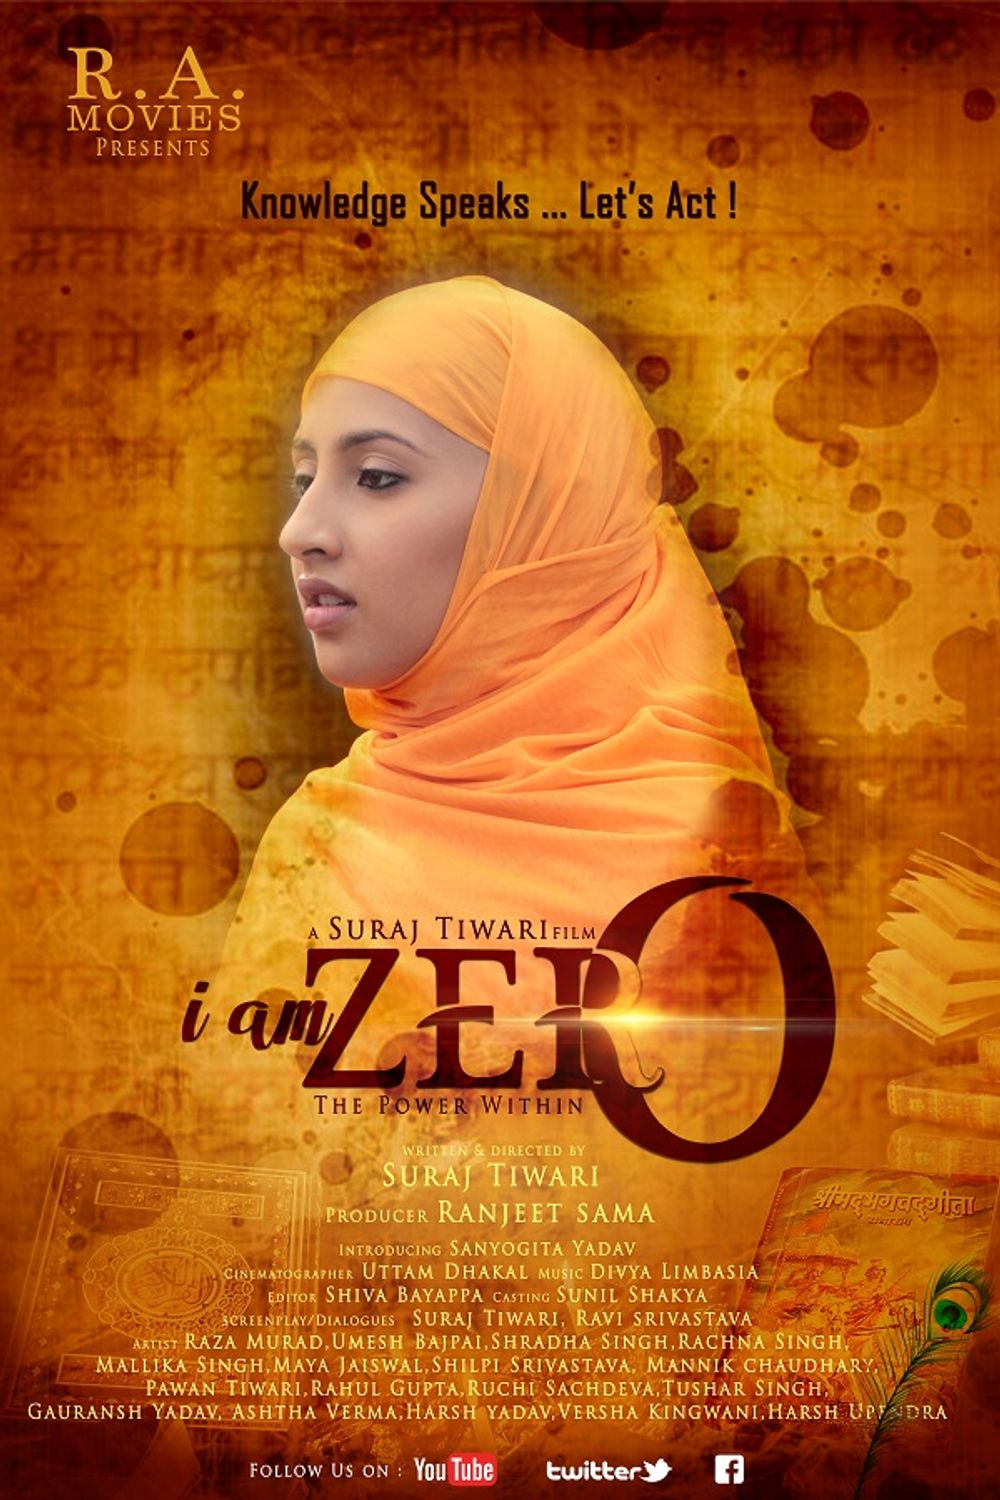 I Am Zero The Power Within (2019) Hindi 720p HDRip x264 1.3GB